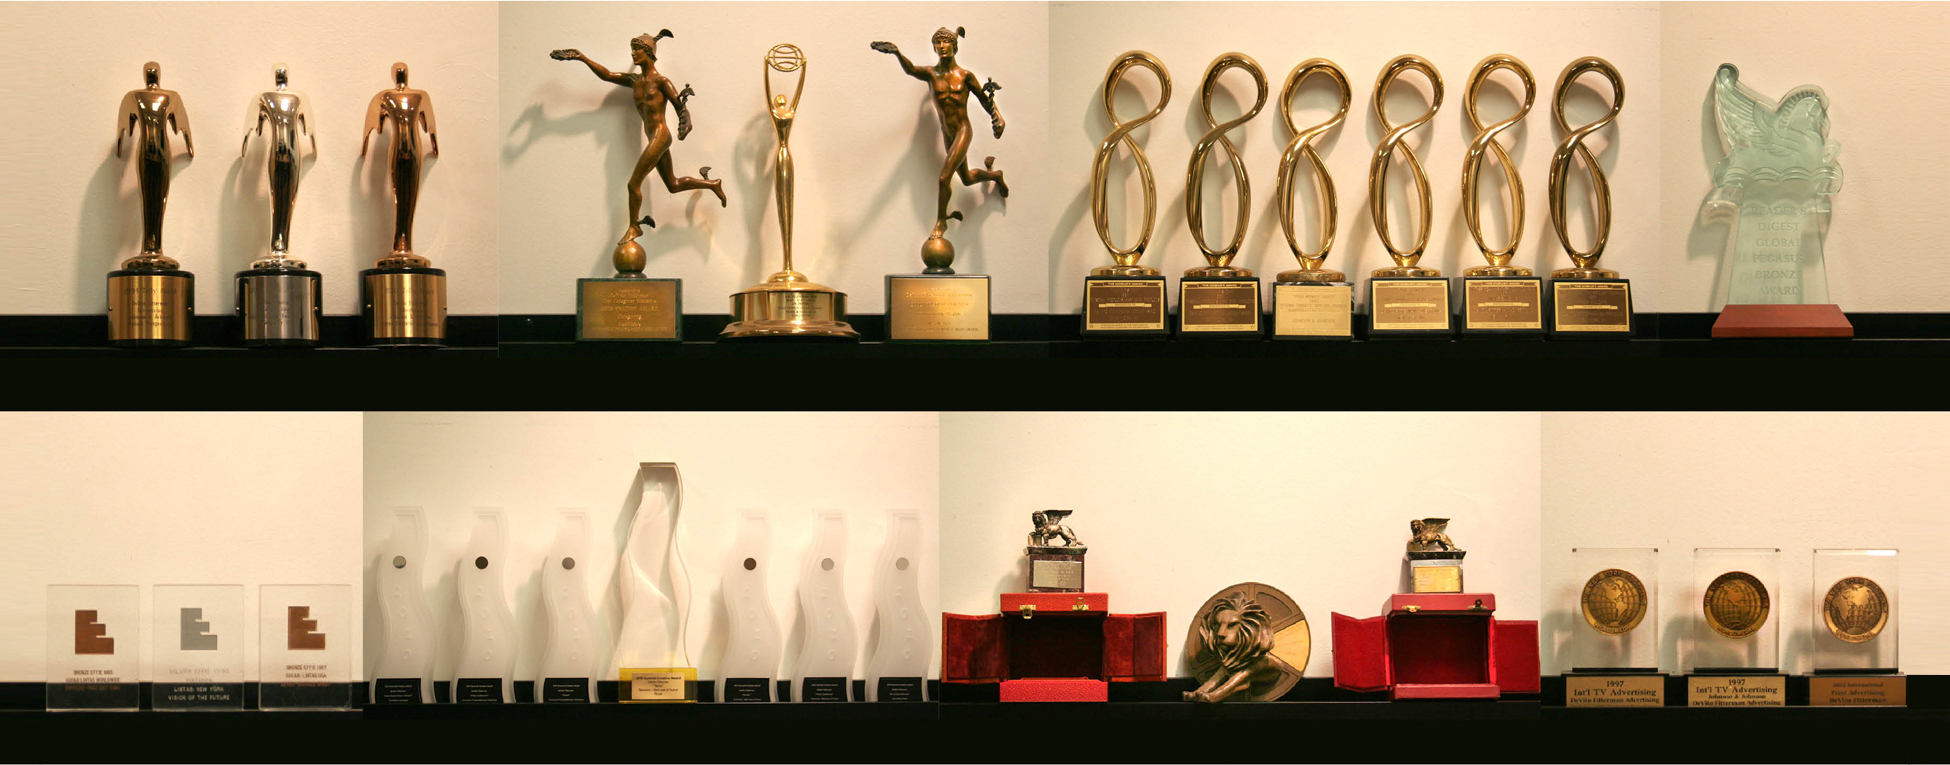 About - Our Awards